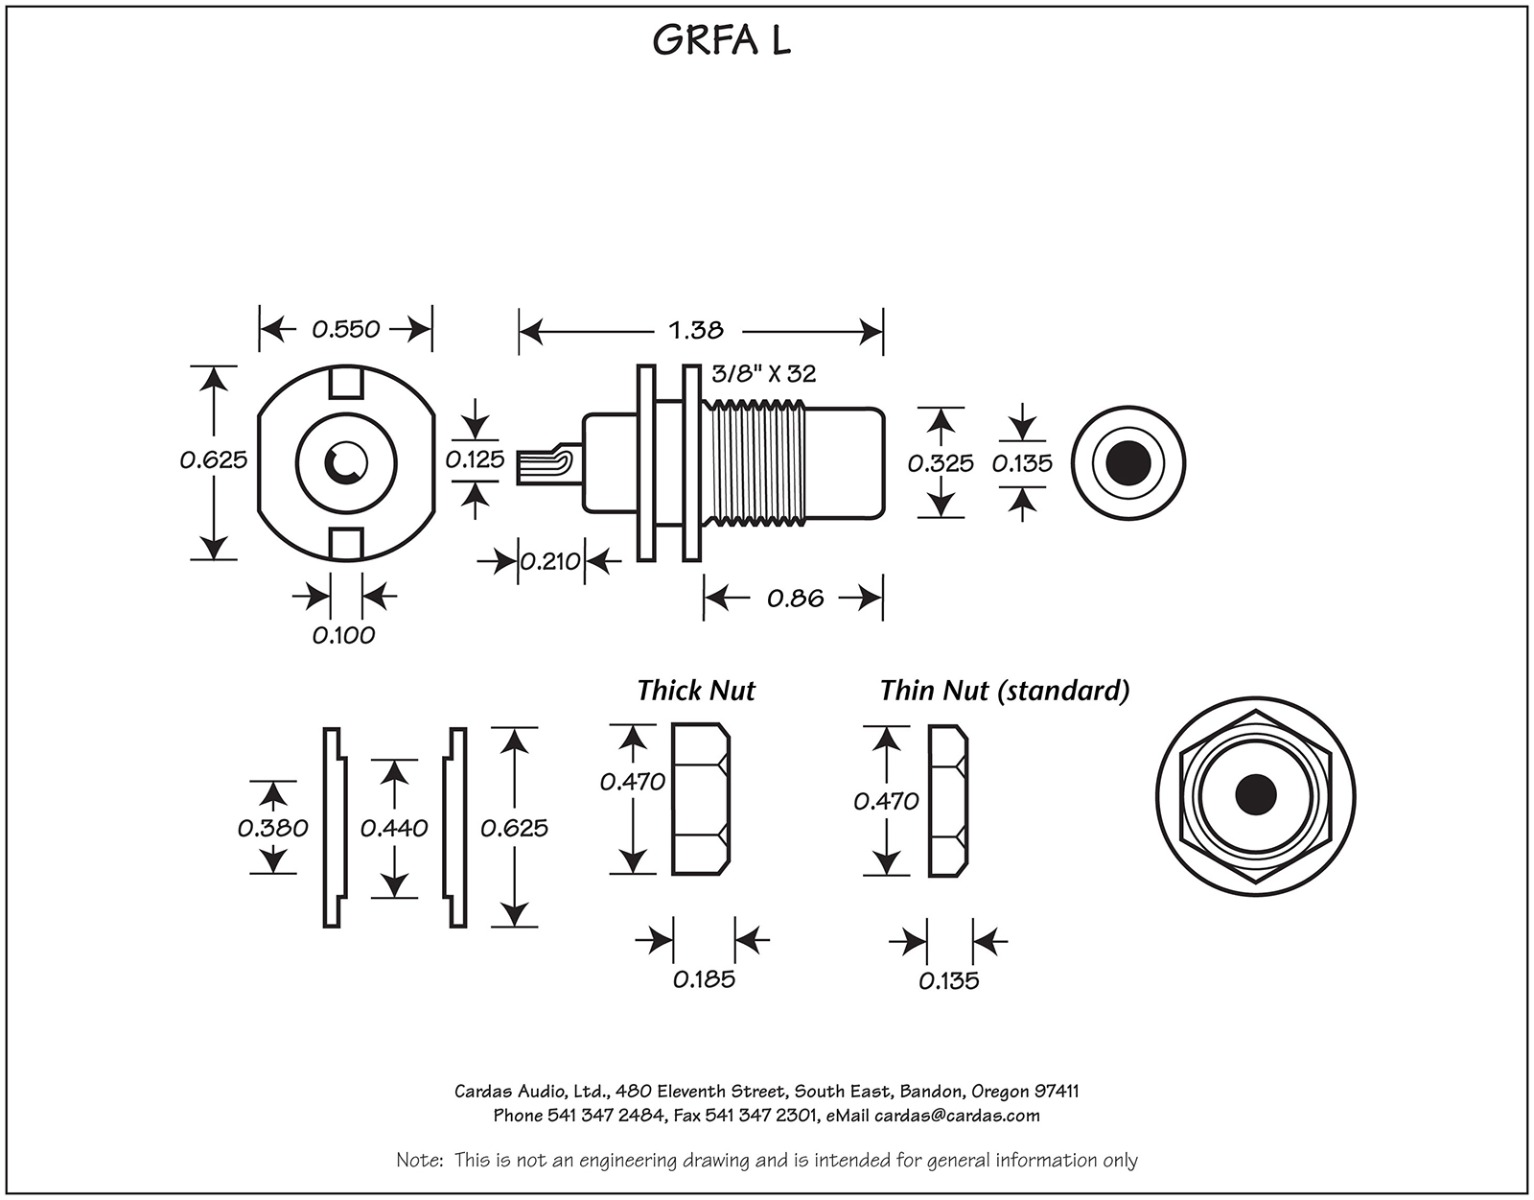 Cardas GRFA Long RCA mount dimensions